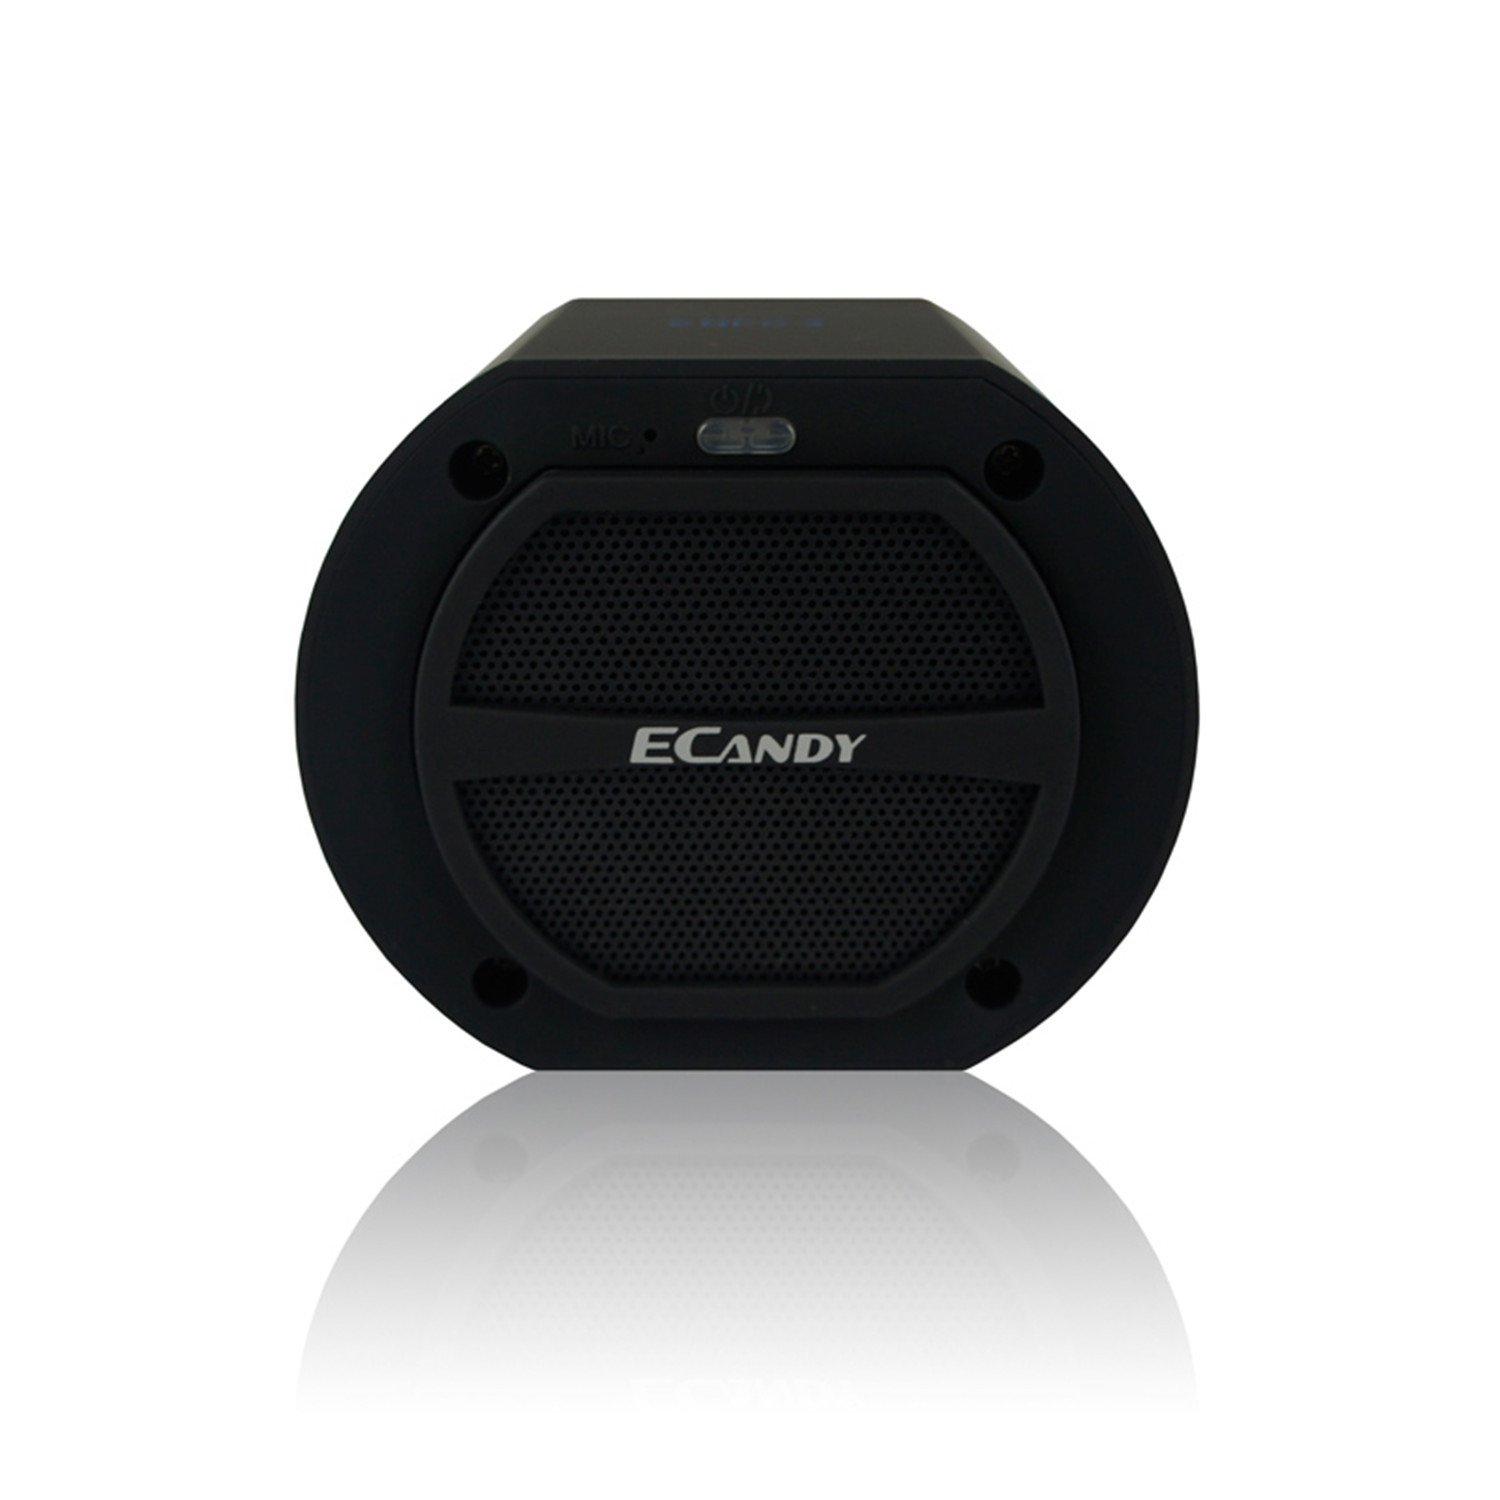 Ecandy Bluetooth Speaker, 10 Hour Playtime, Portable Speaker System, Built In Mic For Calls / NFC Function / For All iPhone / iPhone 6 / iPhone 6 Plus / All iPad / iPad Air 2 / All Phones / Samsung Galaxy Phones & Tablets / Laptops portable wireless bluetooth speaker system talking caller id speakerphone sd card slot charzon mmbox for iphone android smart phones ipad tablets macbook notebooks not for windows 8 built in voice guidance for easy installation no risk t